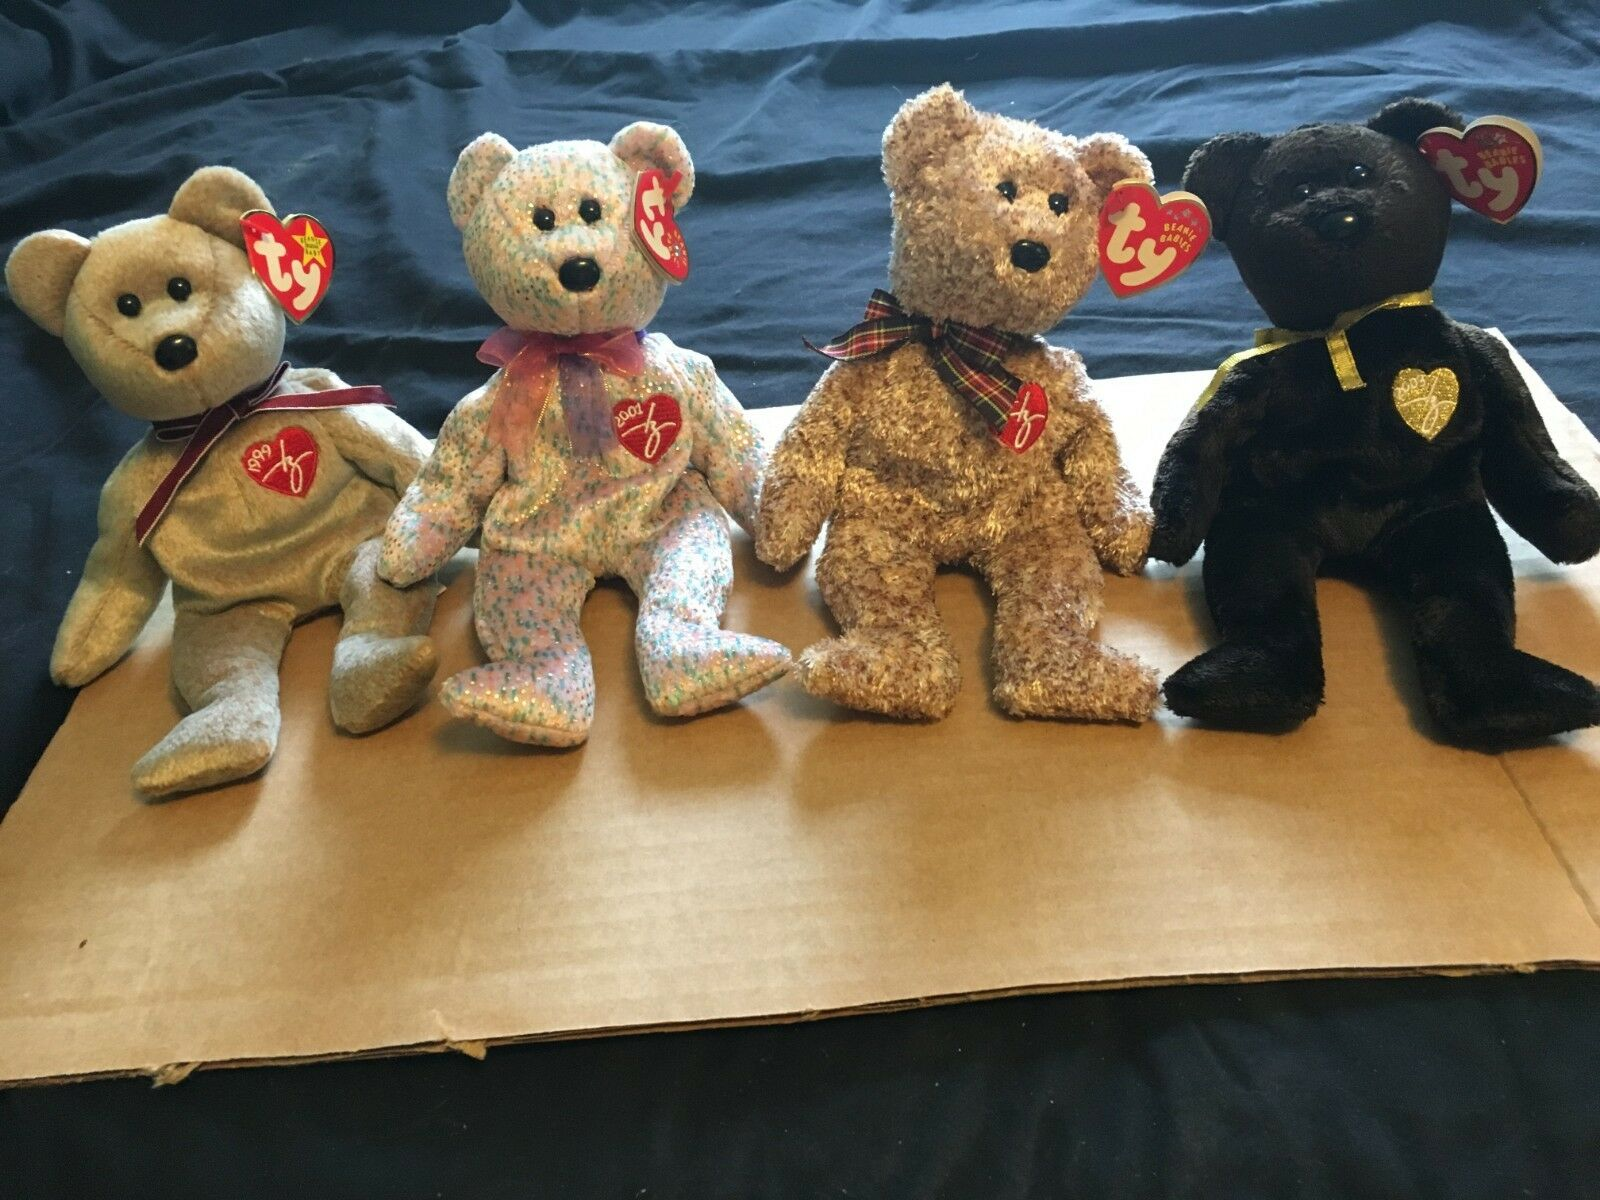 TY Beanie Baby Signature Bears, Mint Condition, Includes 1999